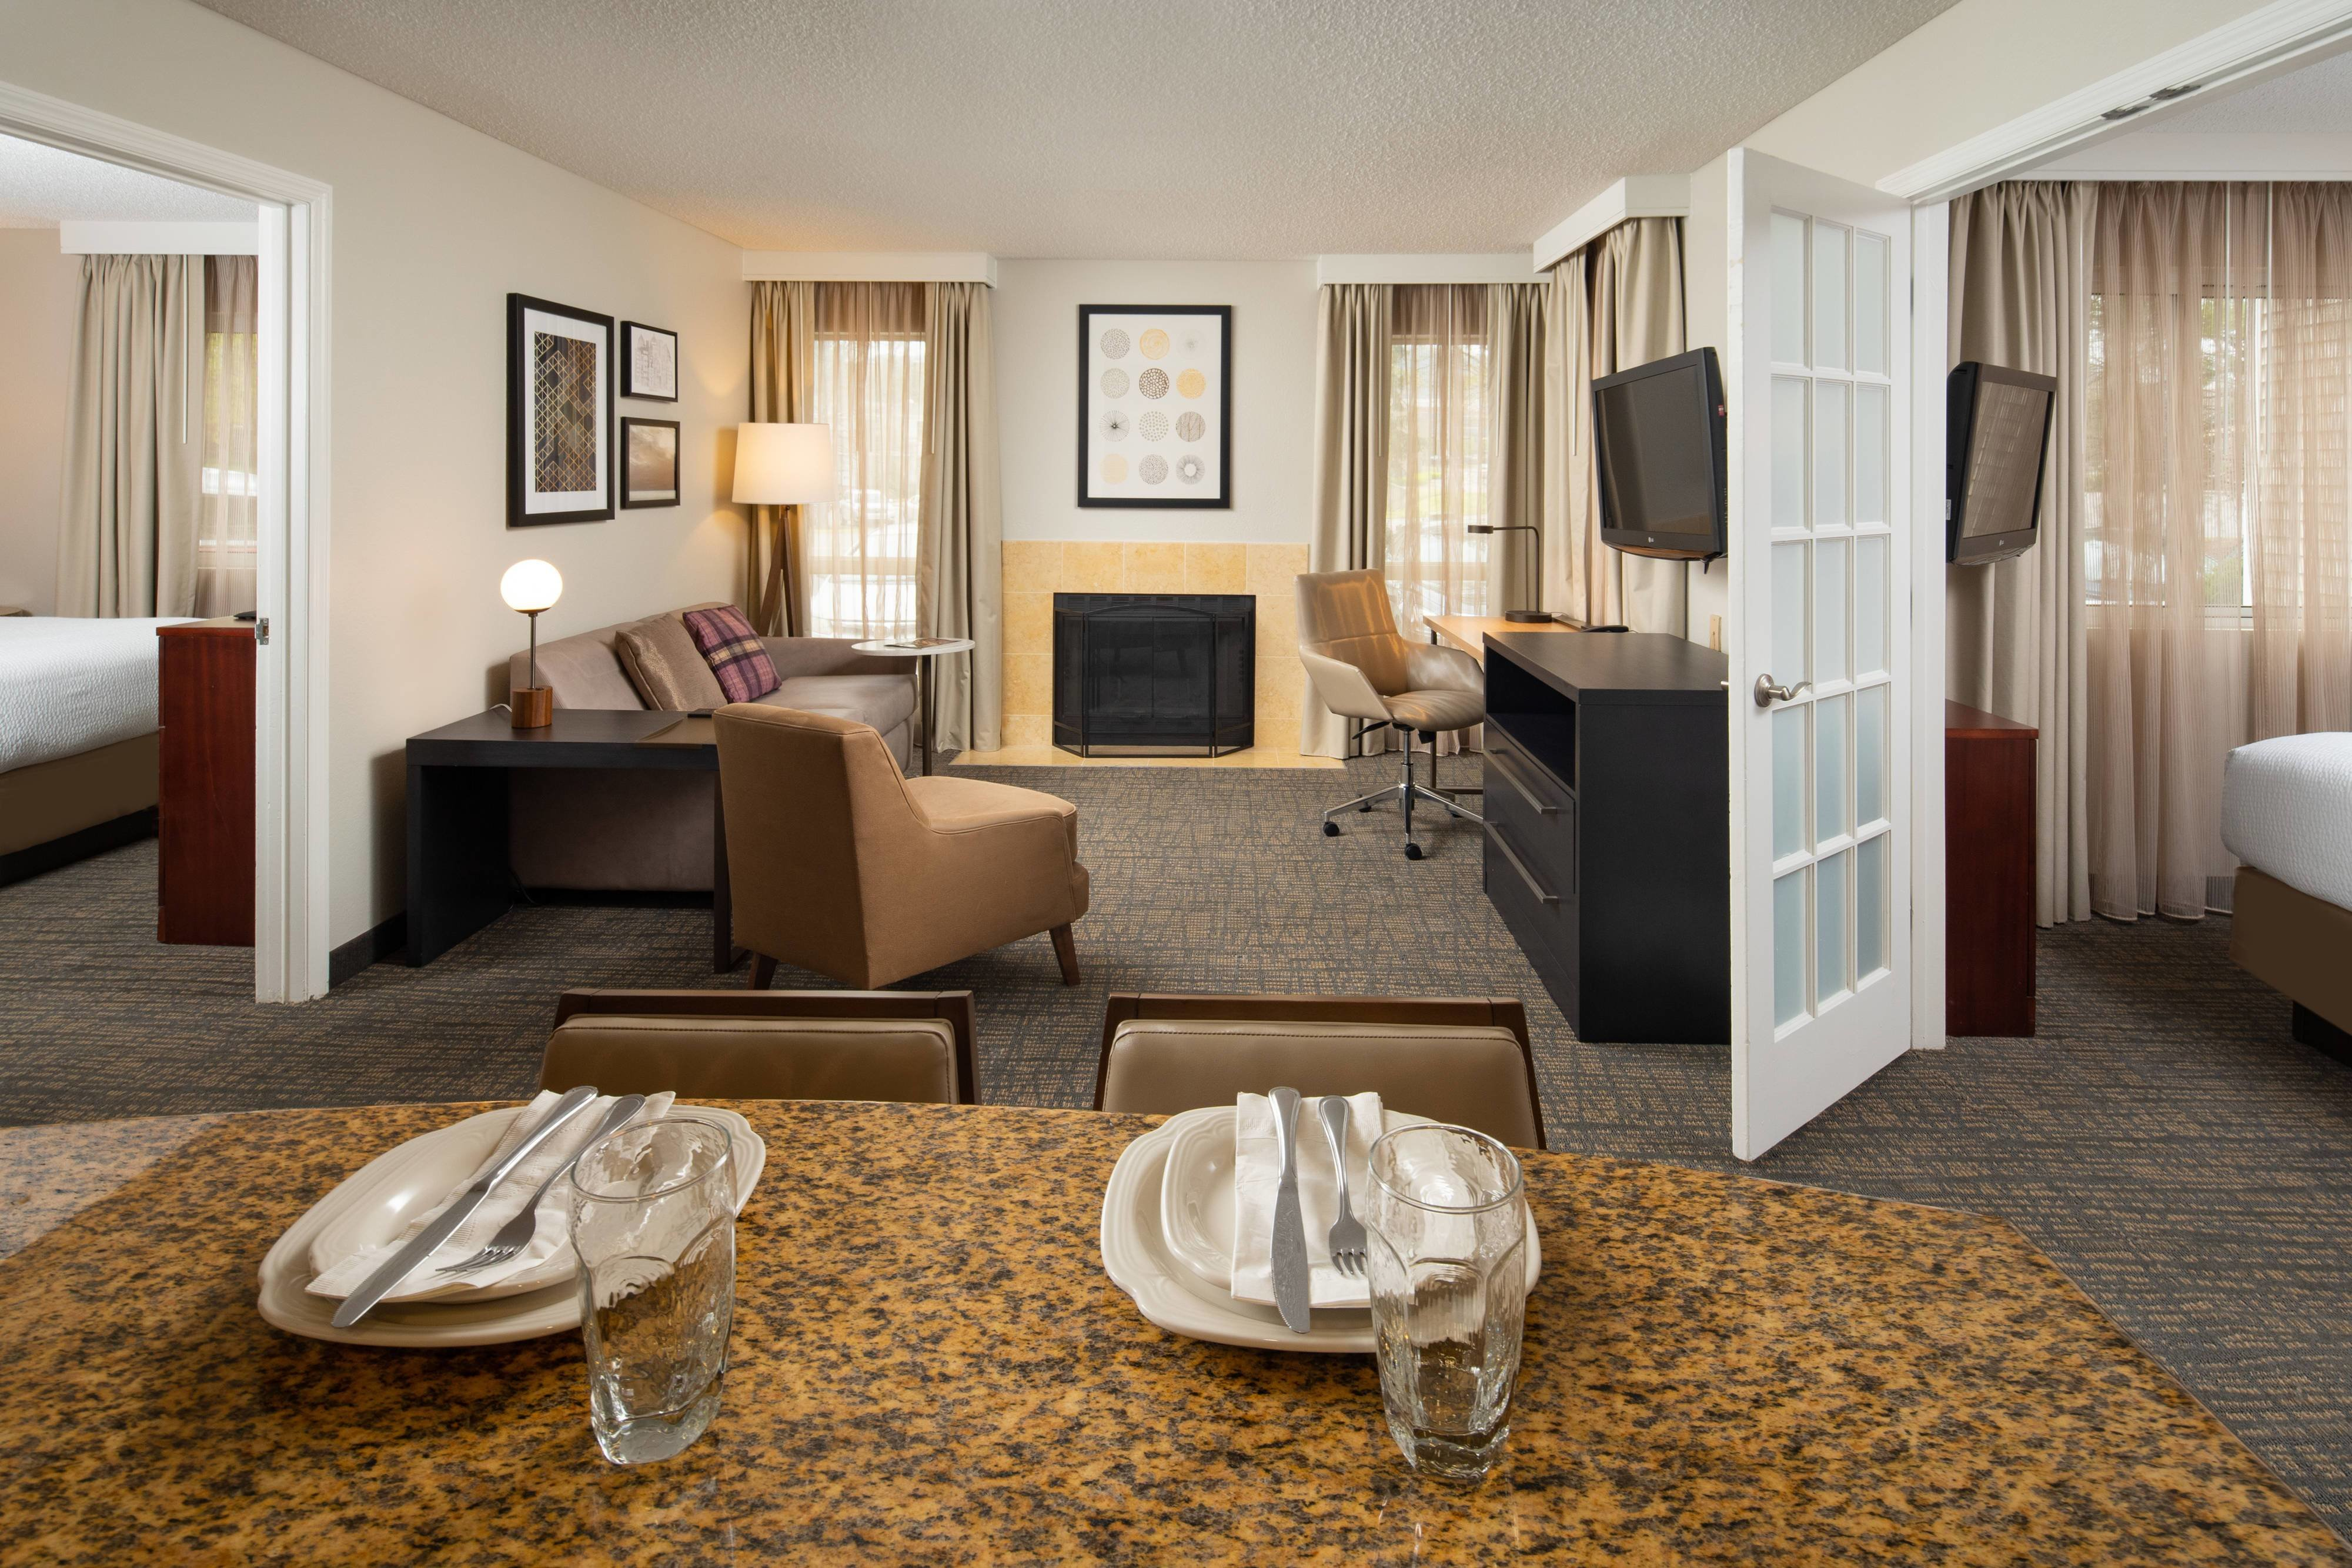 Best Extended Stay Hotels In Brentwood Tn Residence Inn With Pictures